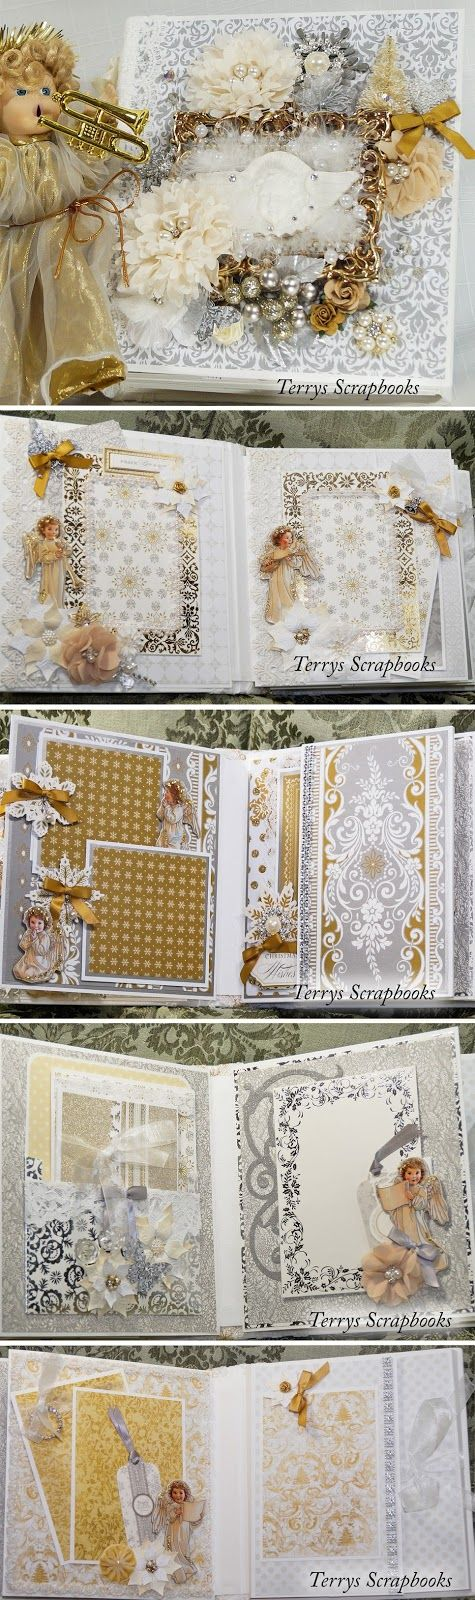 Terry's Scrapbooks: Silver and Gold Christmas Album Reneabouquets DT project for December